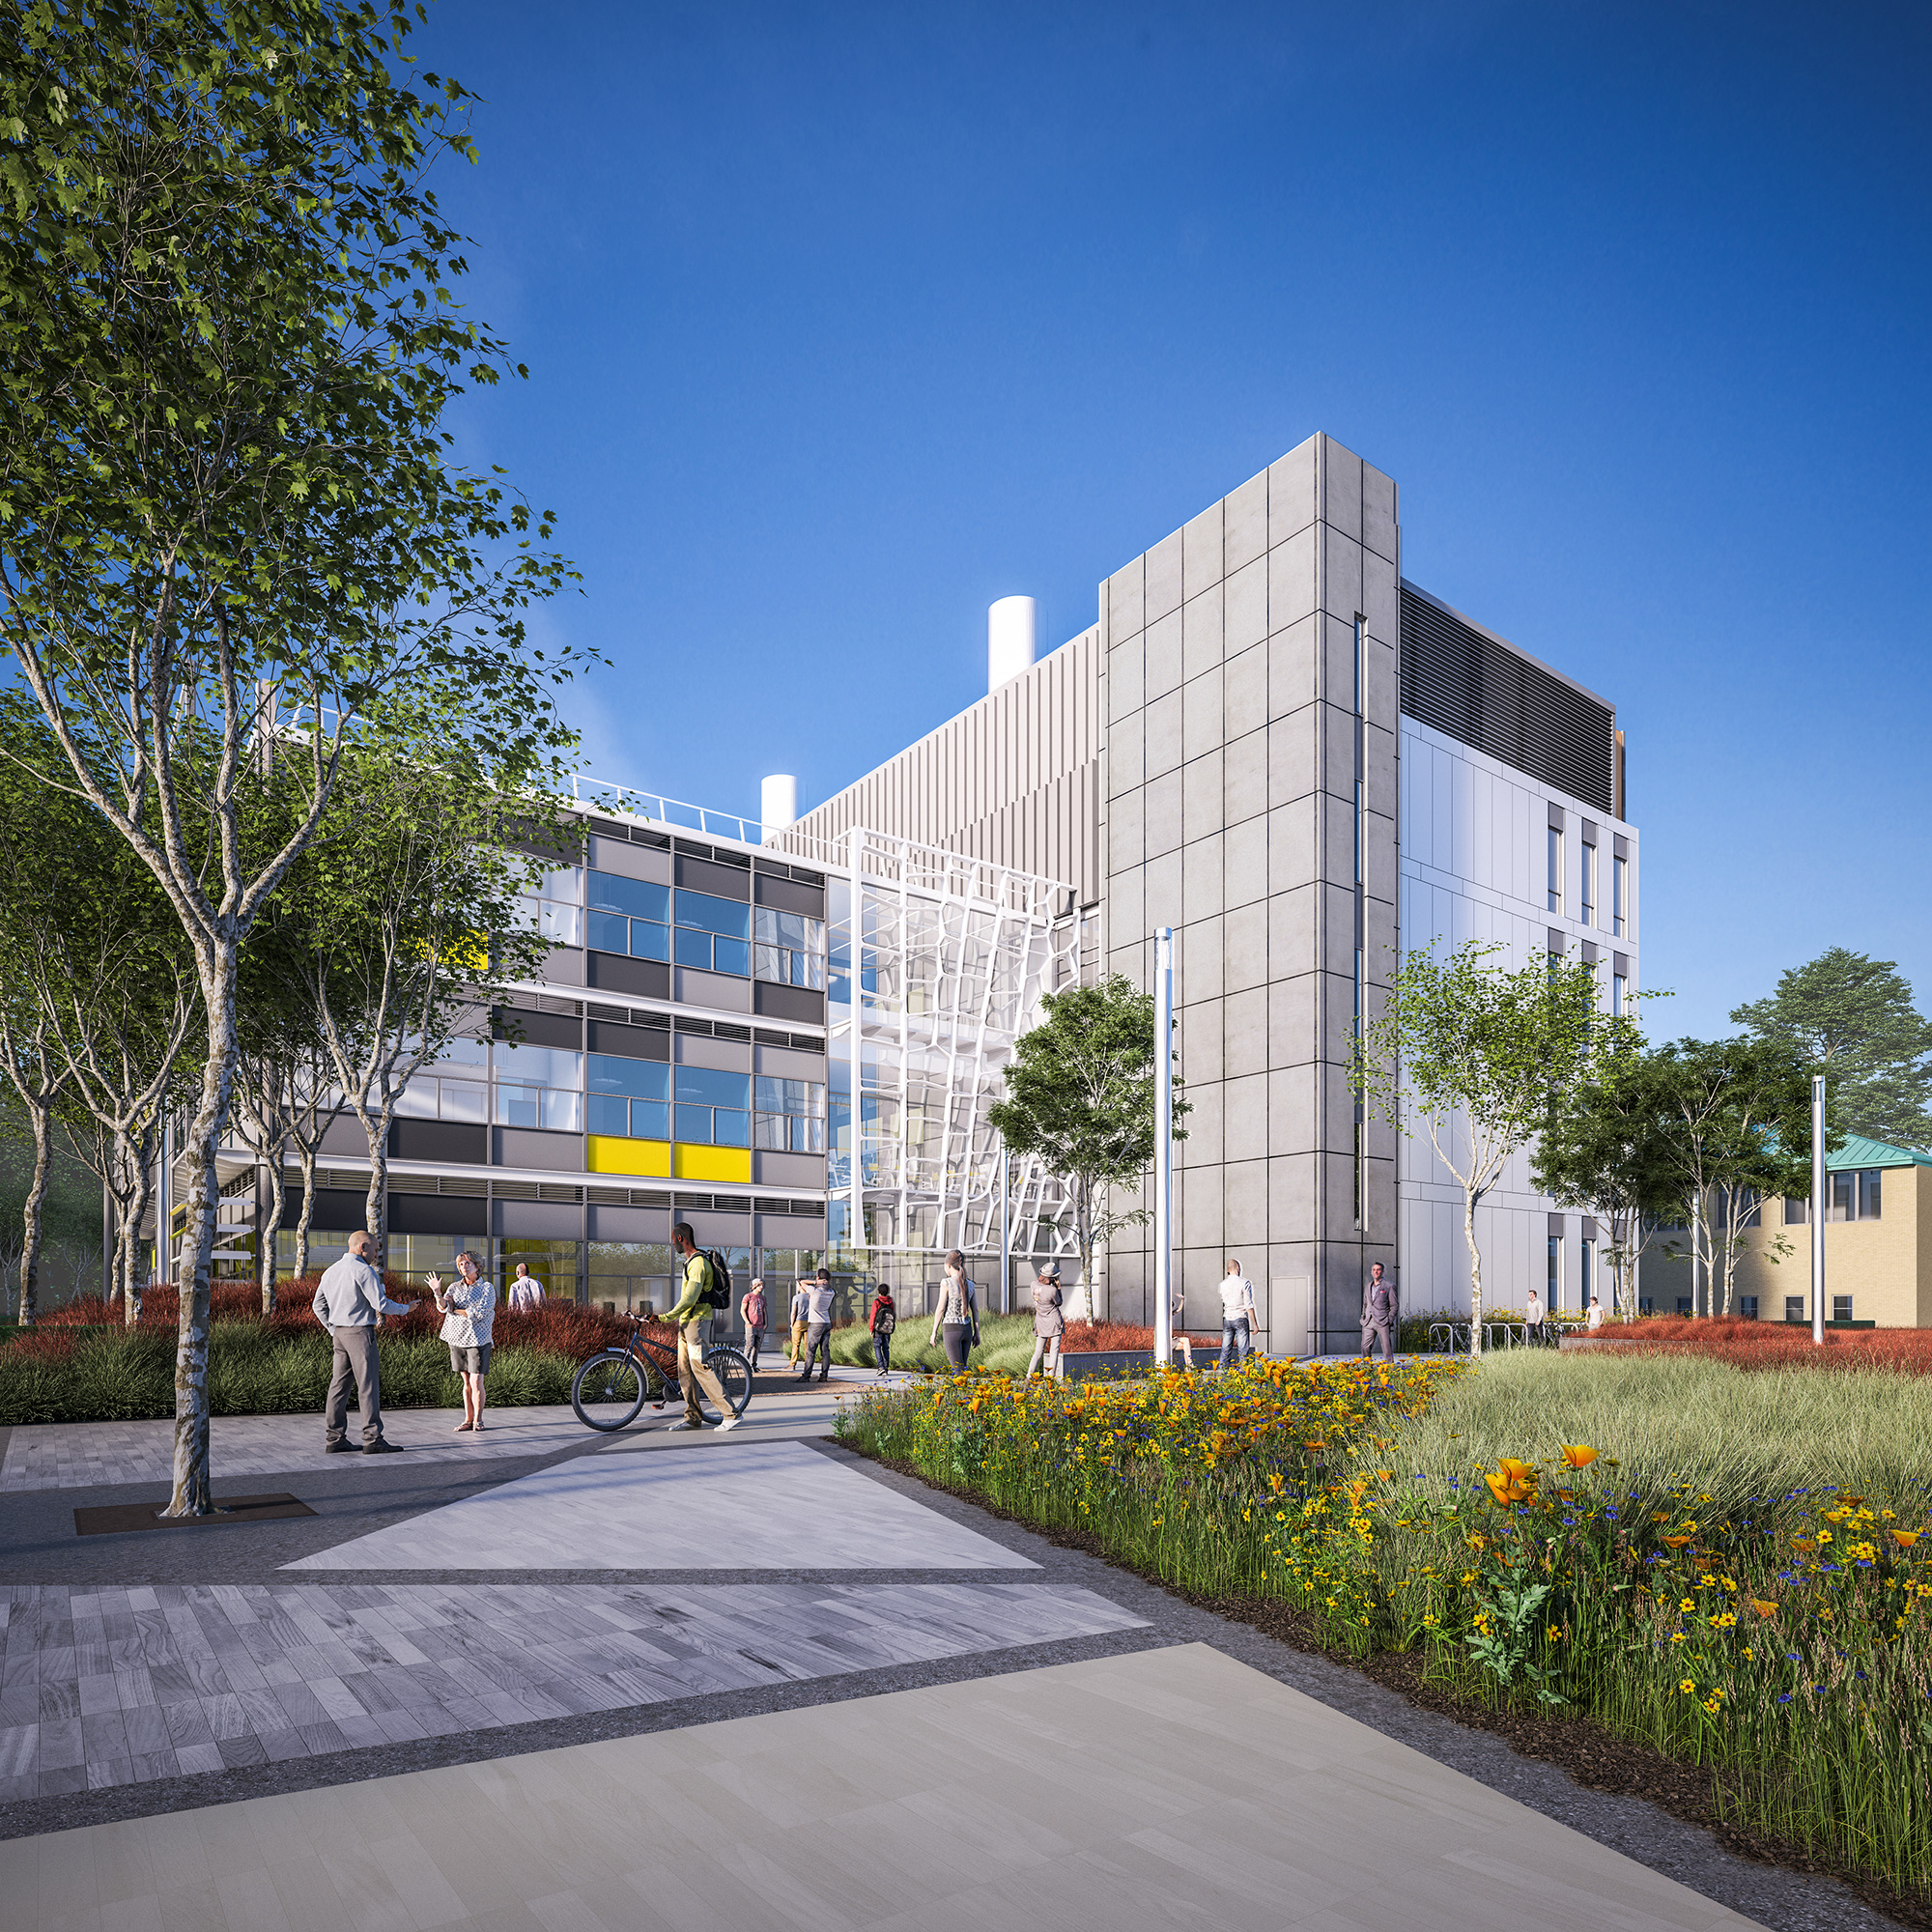 An artist's impression of the new laboratory on the Whiteknights Campus